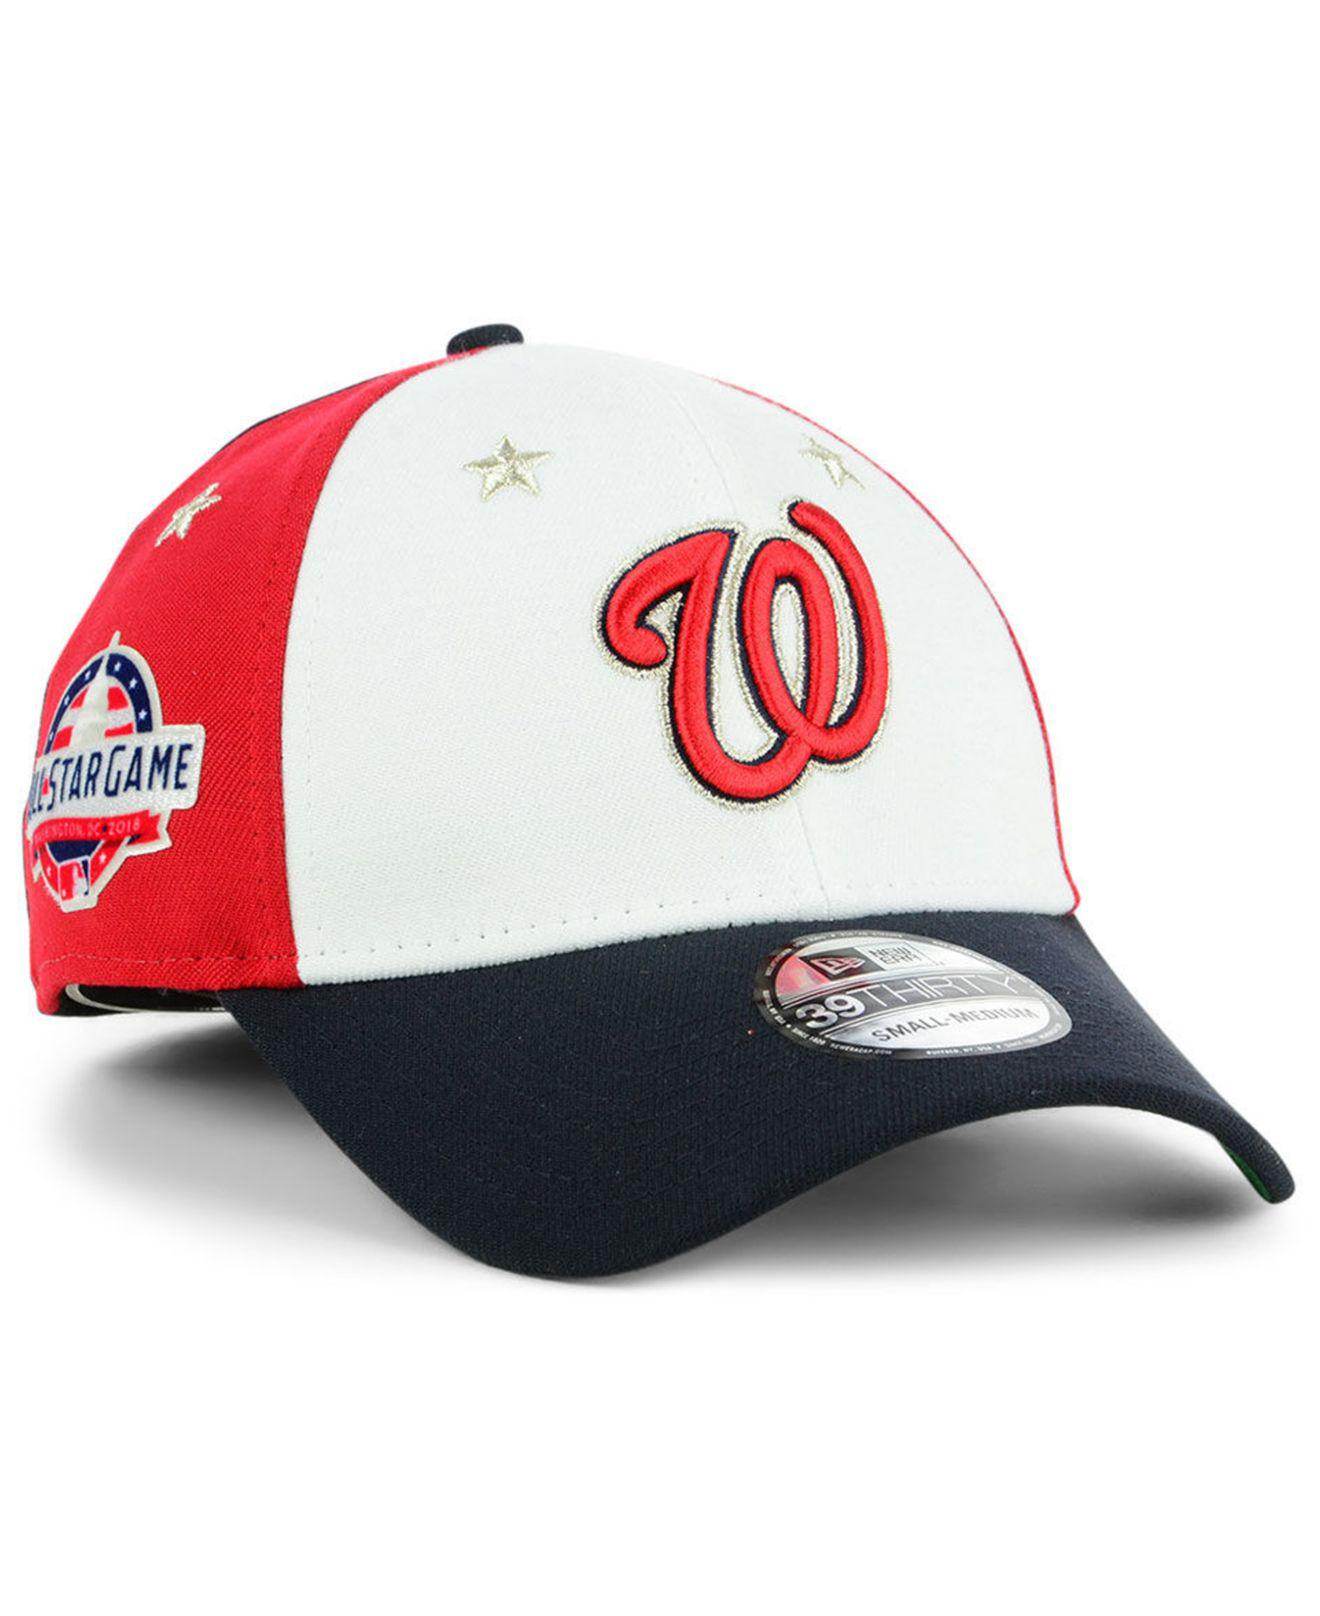 11908263452ca2 KTZ. Men's Red Washington Nationals All Star Game 39thirty Stretch Fitted  Cap 2018